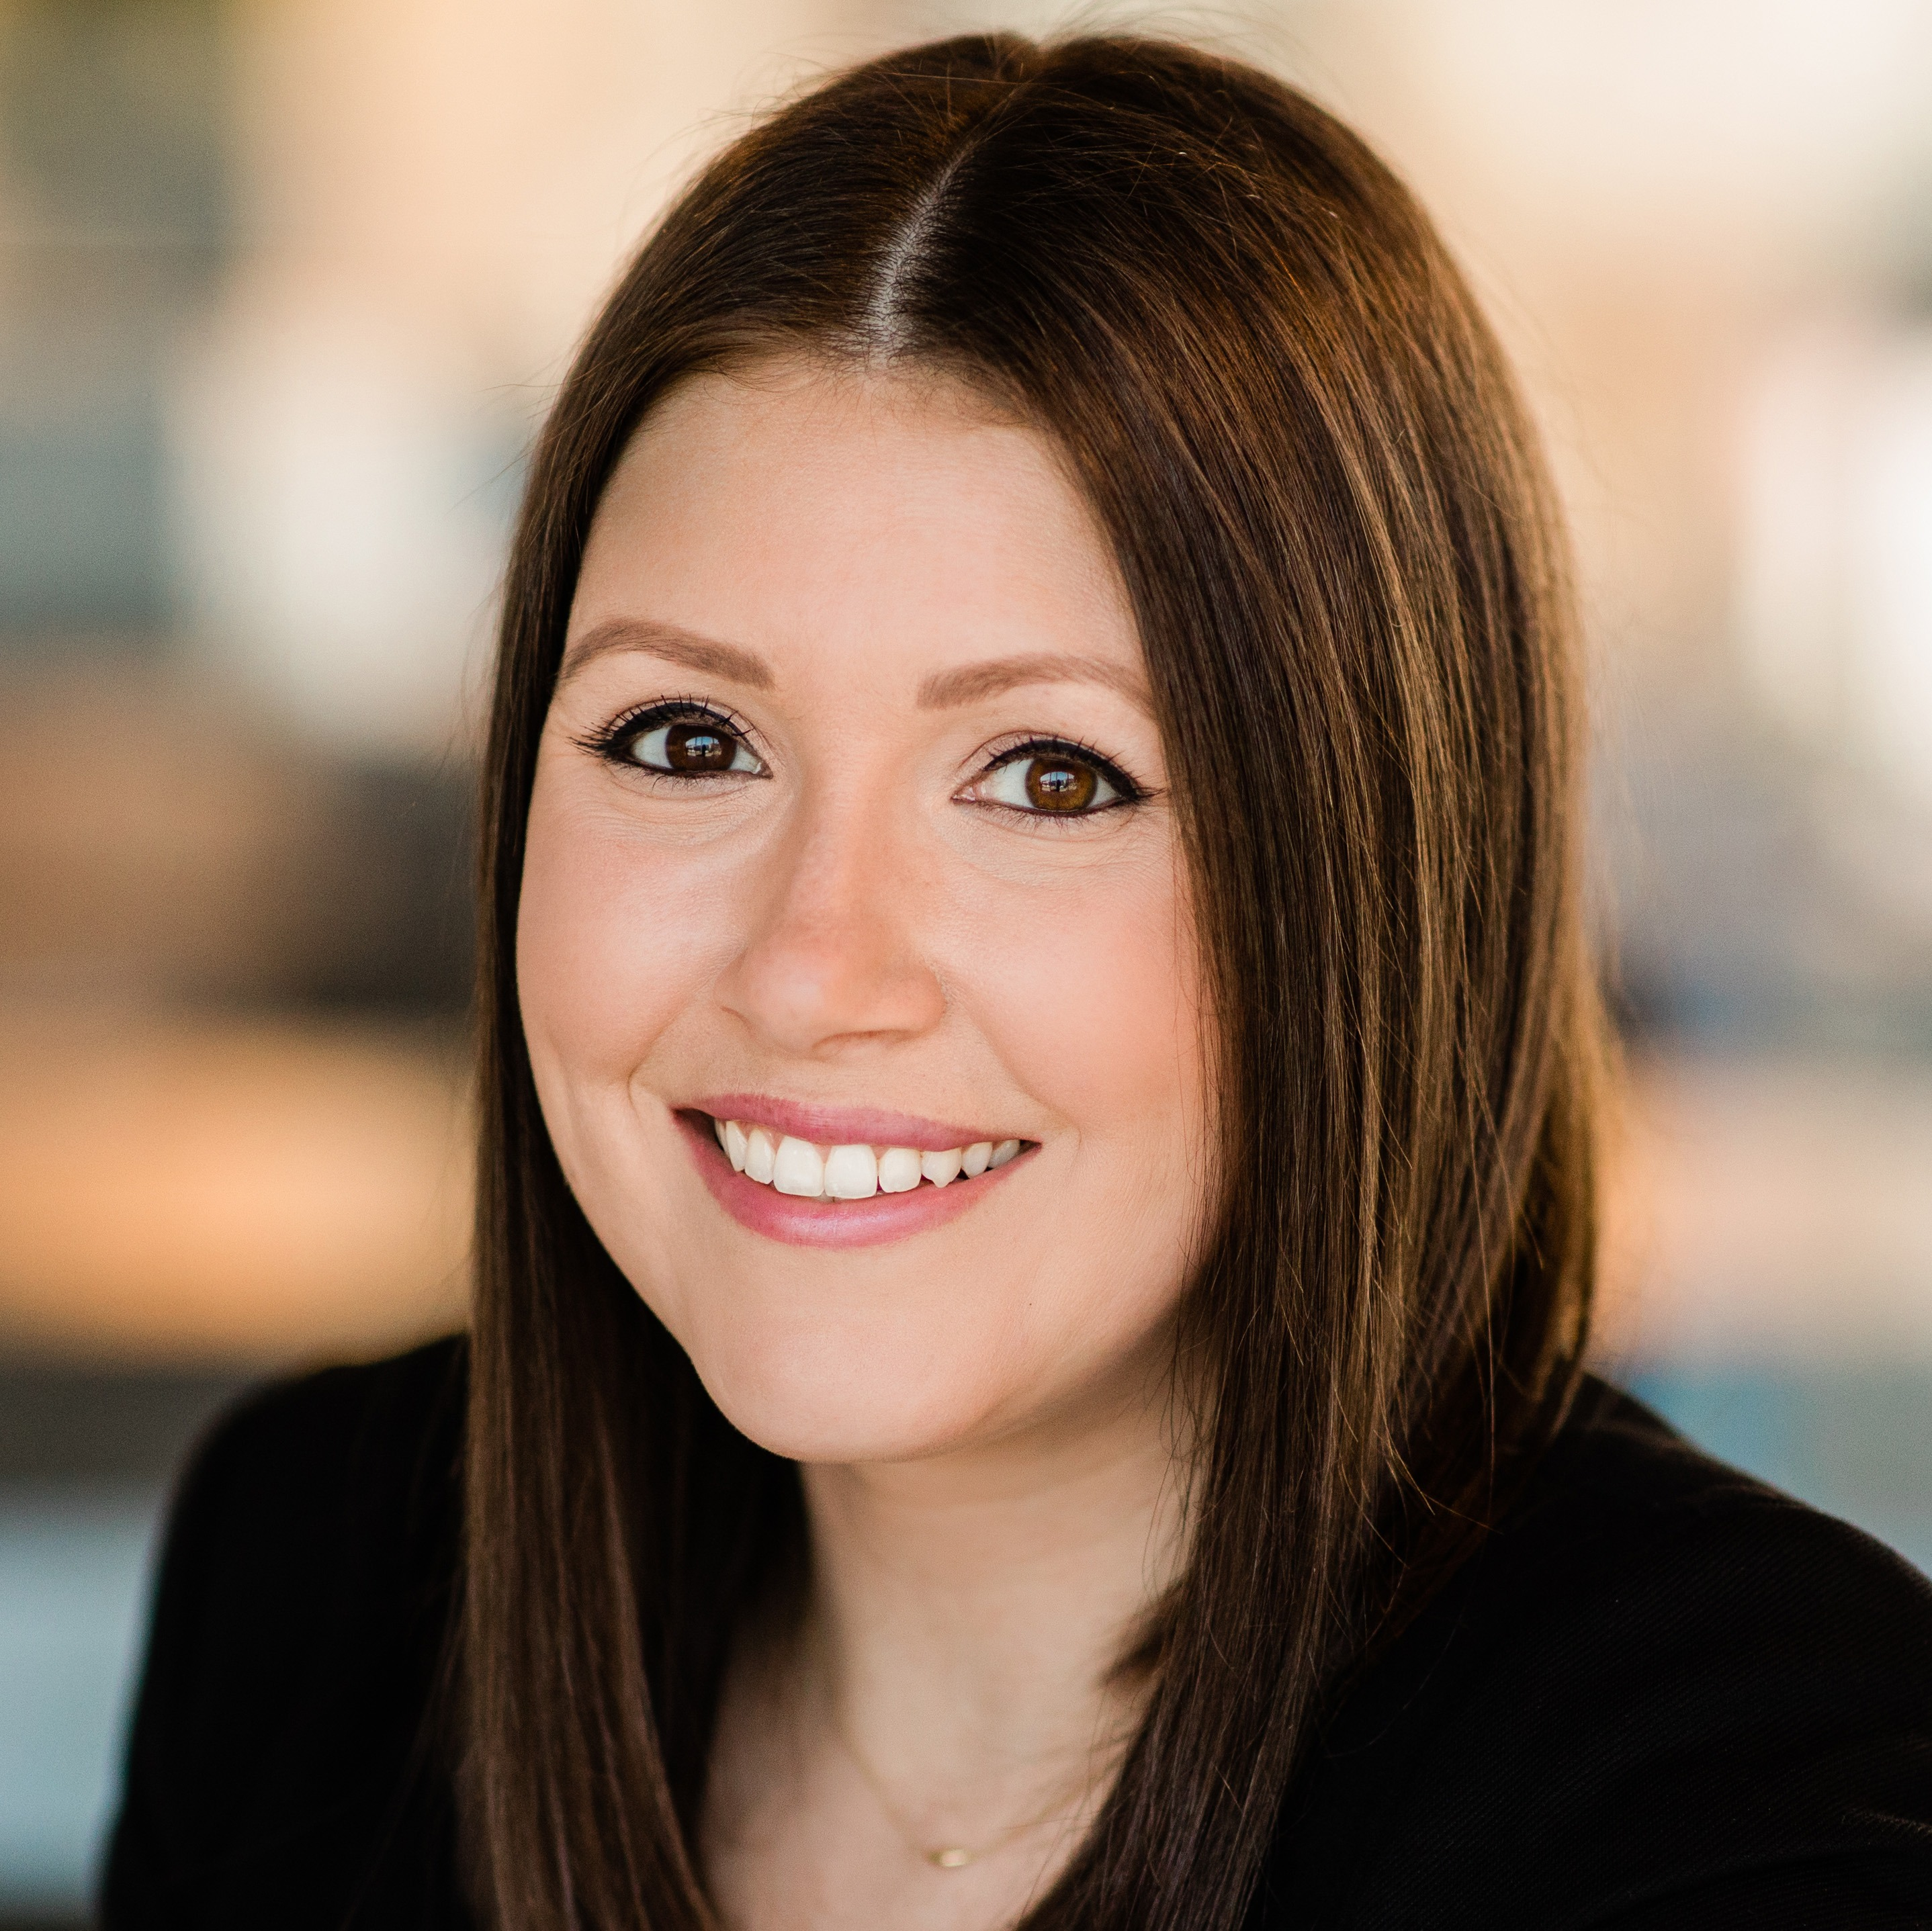 Lacey Maly works at FIMI Group